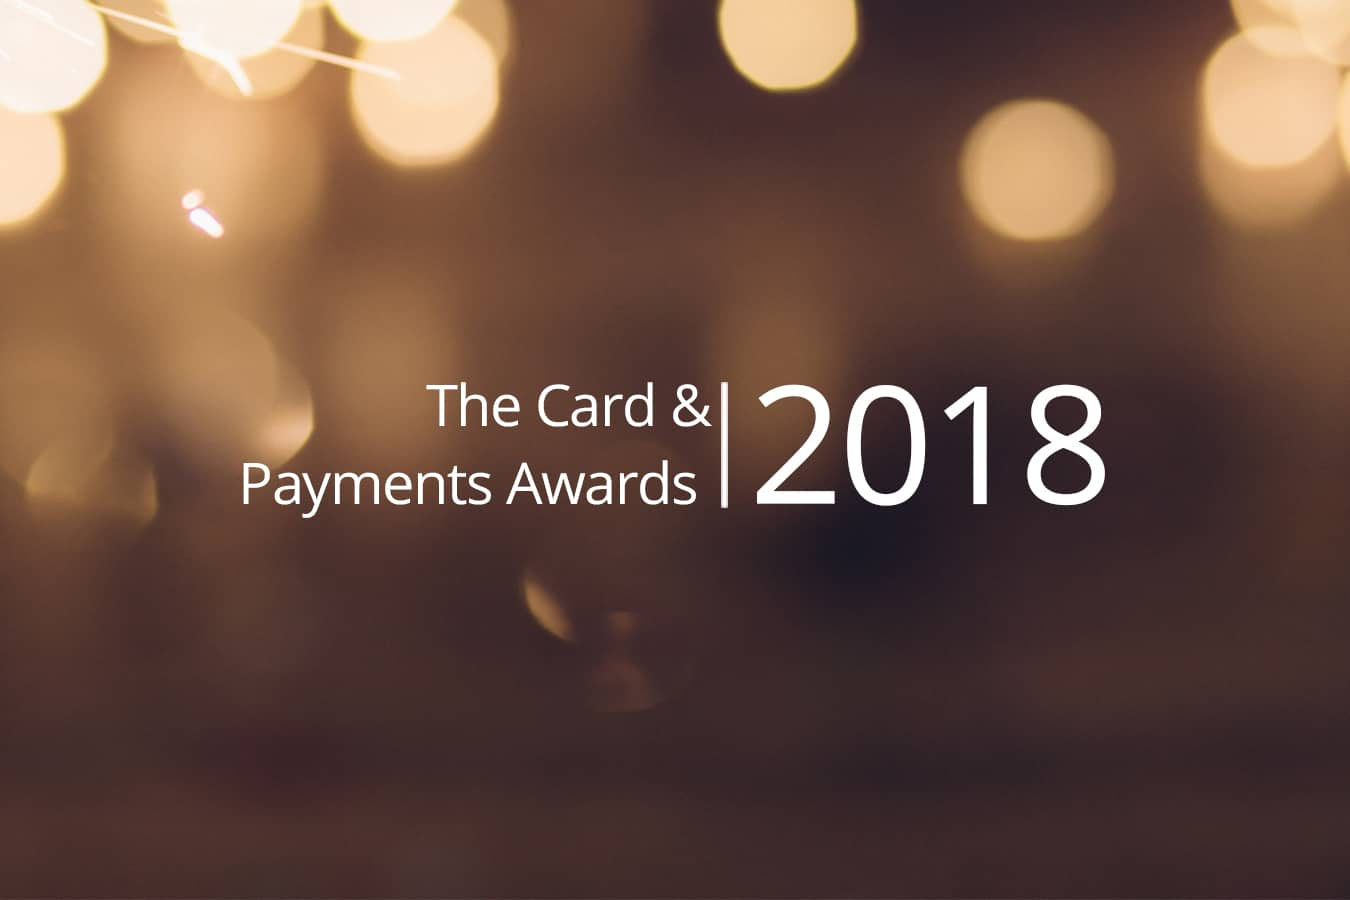 The Card & Payments Awards 2018